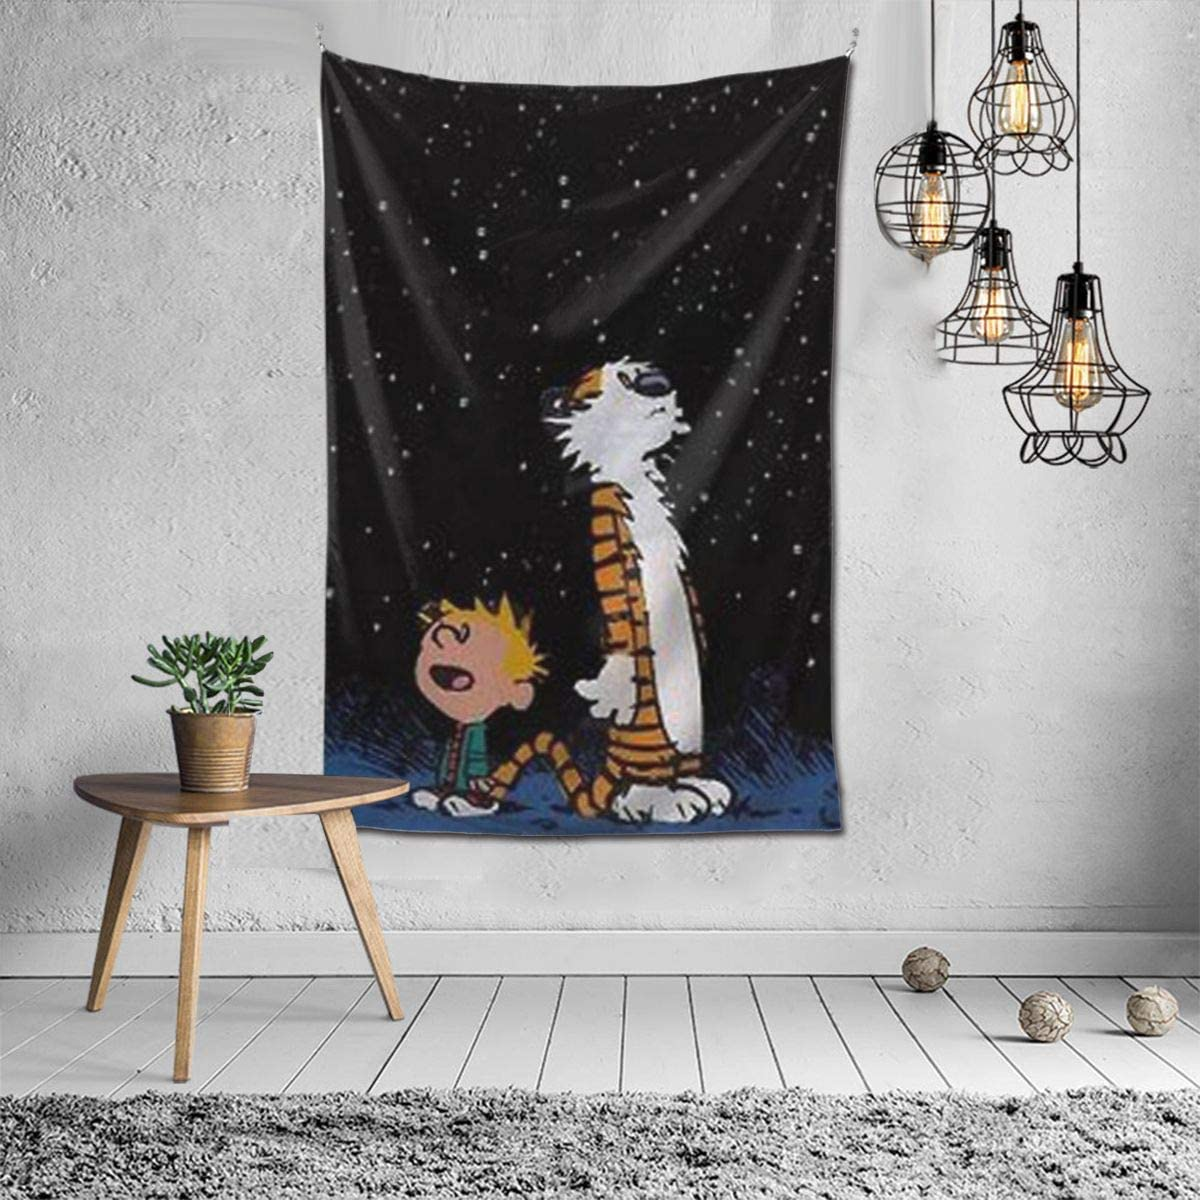 Primrosy Calvin-and-Hobbes Tapestry Wall Hanging Hippie Bedding for Living Room Bedroom Dorm Home Art Decor Blanket 60 x 51 Inch